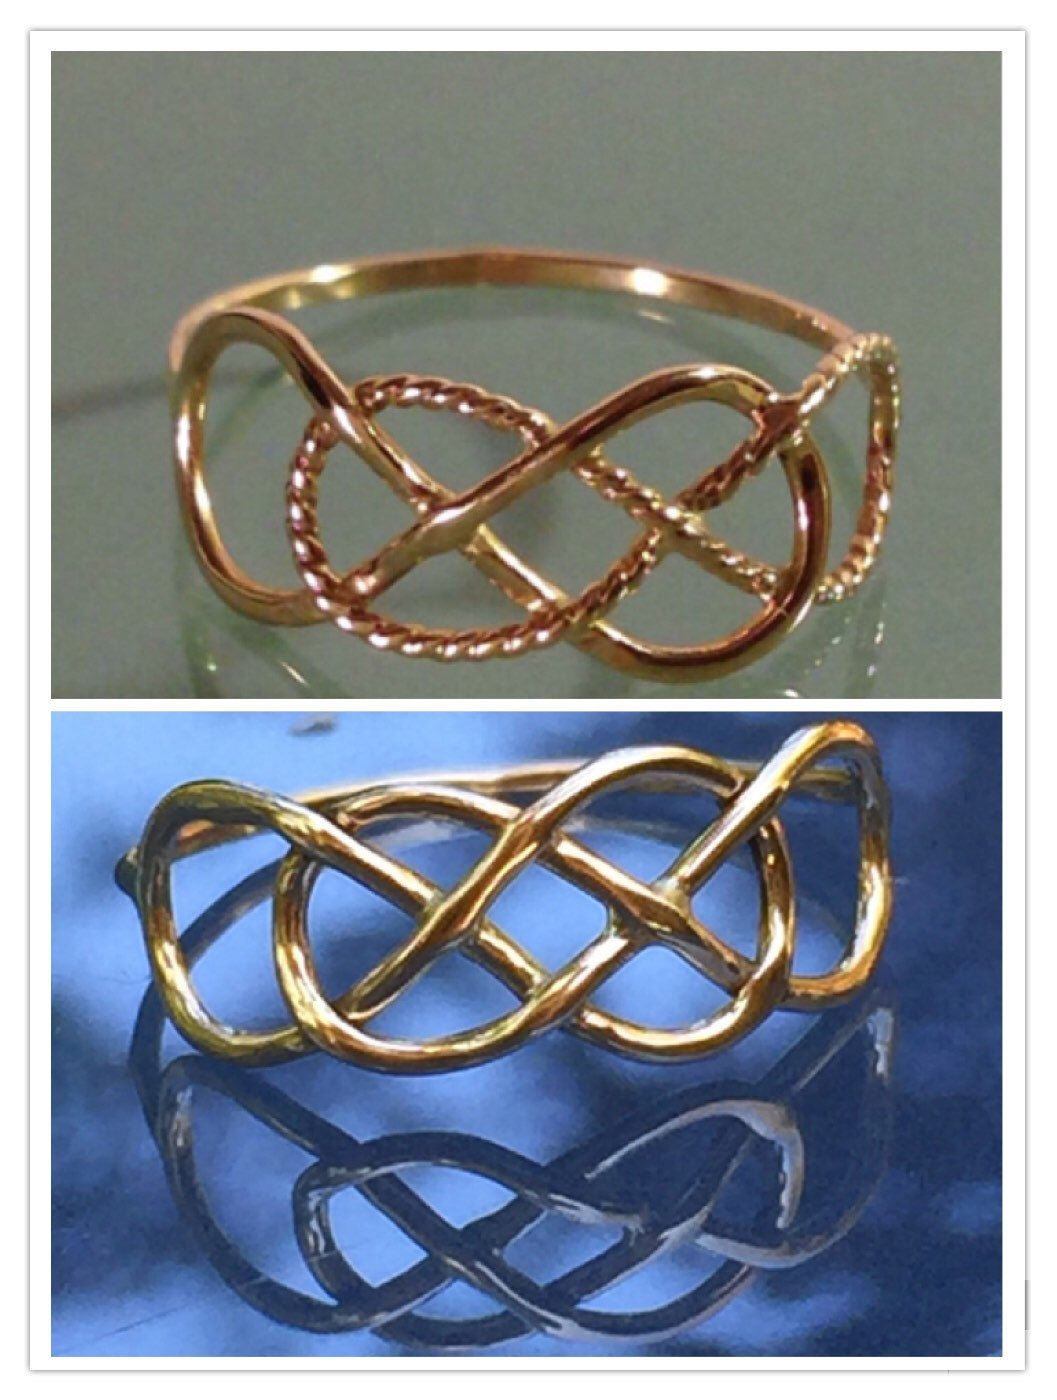 Infinity 14k Solid Gold Ring by EllynBlueJewelry on Etsy https://www.etsy.com/listing/206775005/infinity-14k-solid-gold-ring